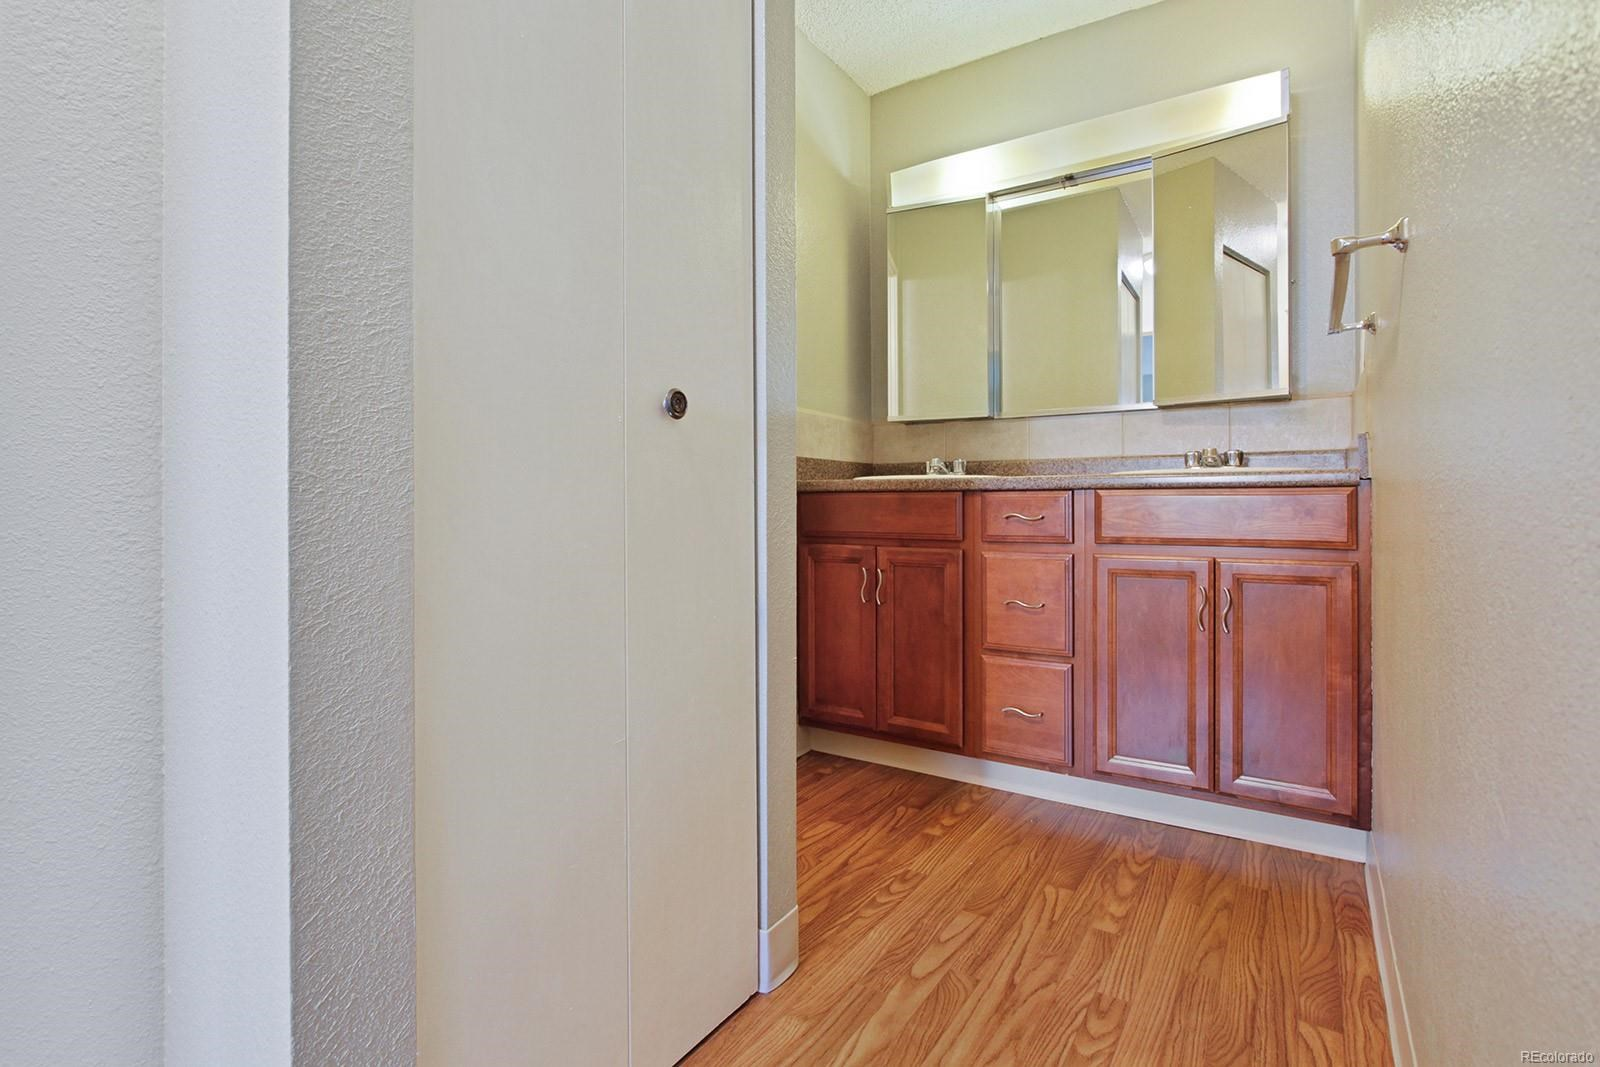 MLS# 3830405 - 5 - 1150 Golden Circle #403, Golden, CO 80401